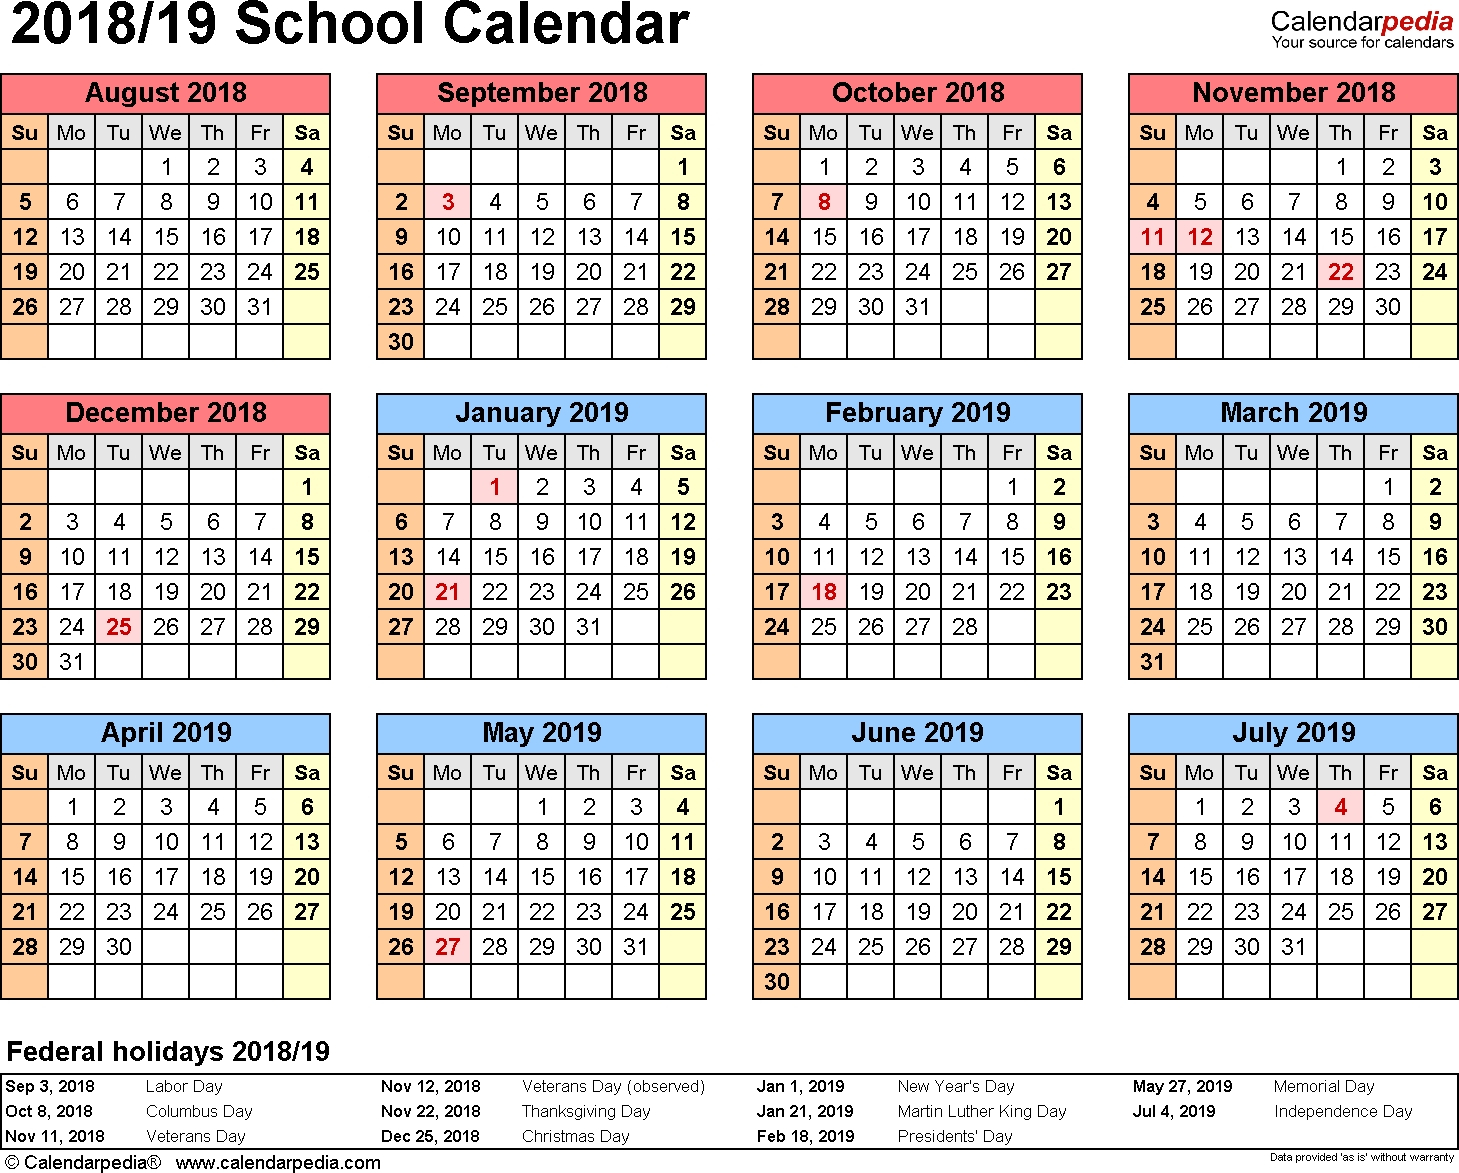 School Calendars 2018/2019 As Free Printable Word Templates-Unit 4 Unit 4 Calendar 2019